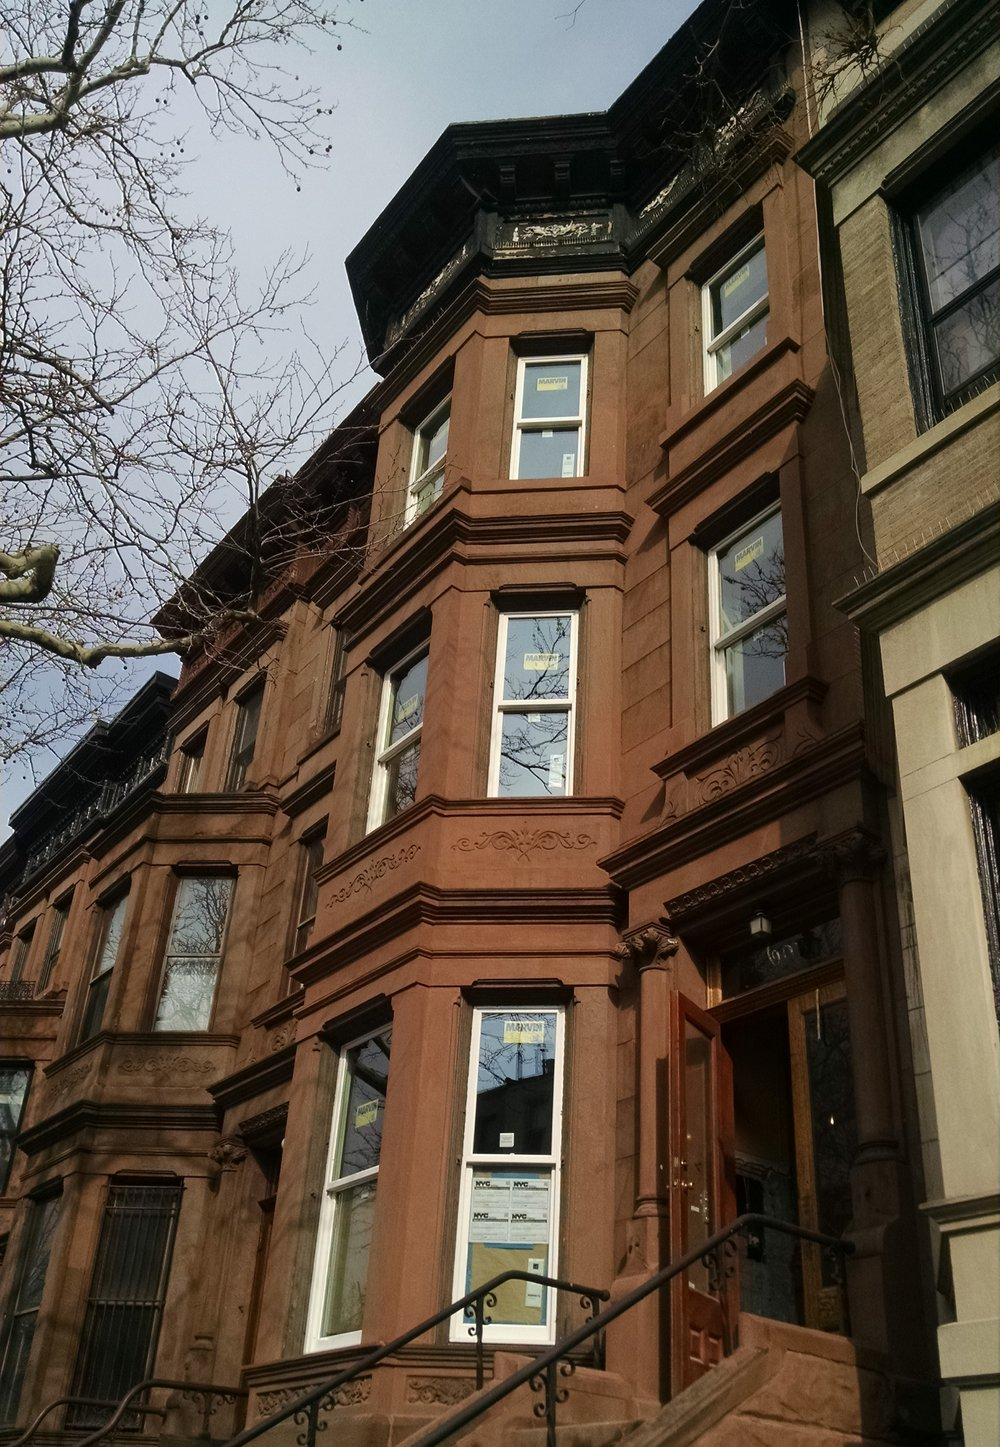 Replaced original windows with new Marvin double hung windows.